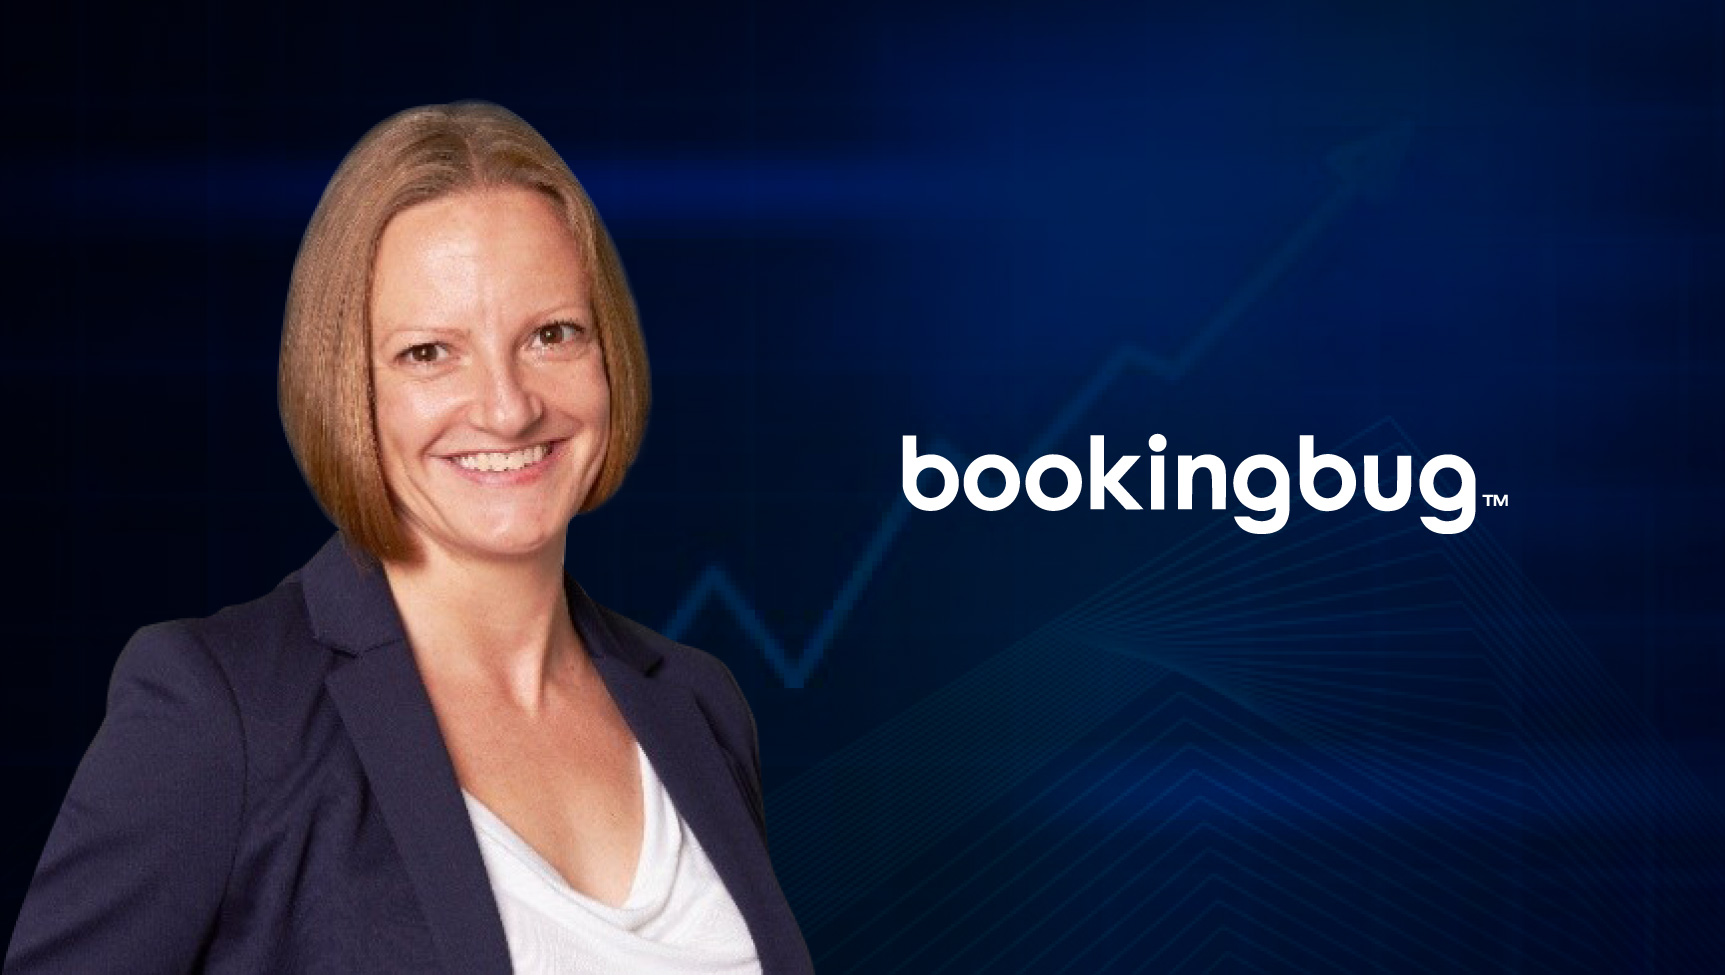 SalesTech Interview with Hayley-Jayne Cone, Chief Customer Officer at BookingBug